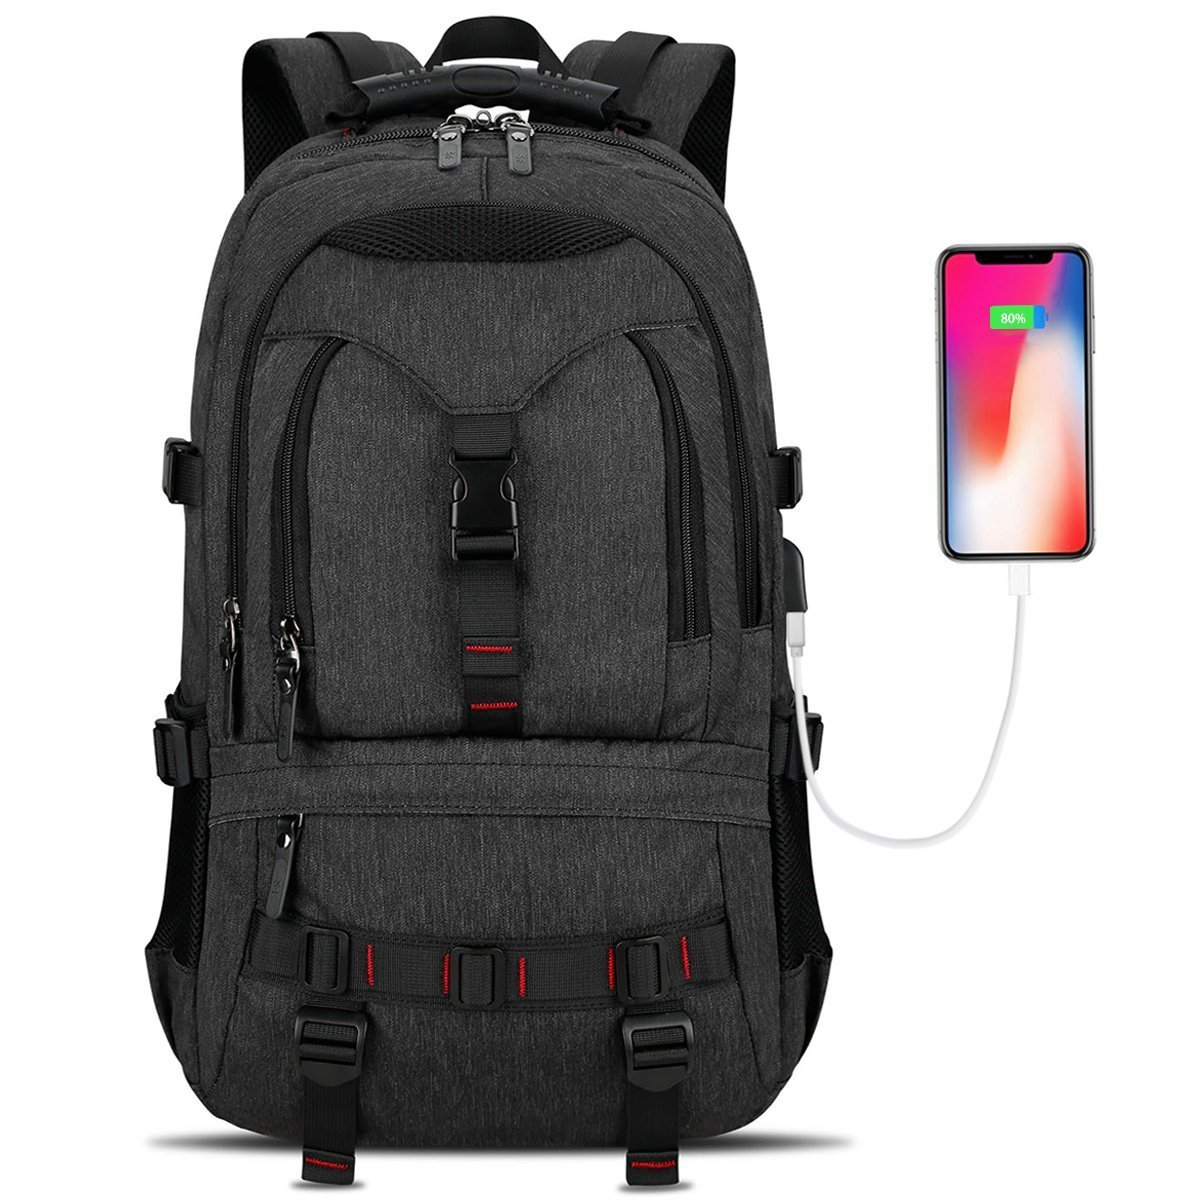 Laptop Backpack, Tocode Travel Backpack Contains Multi-Function Pockets,Stylish Anti-Theft School Bag with USB Charging Port Fits 17.3 Inch Laptop Comfort Pack for Men & Women –Black Update